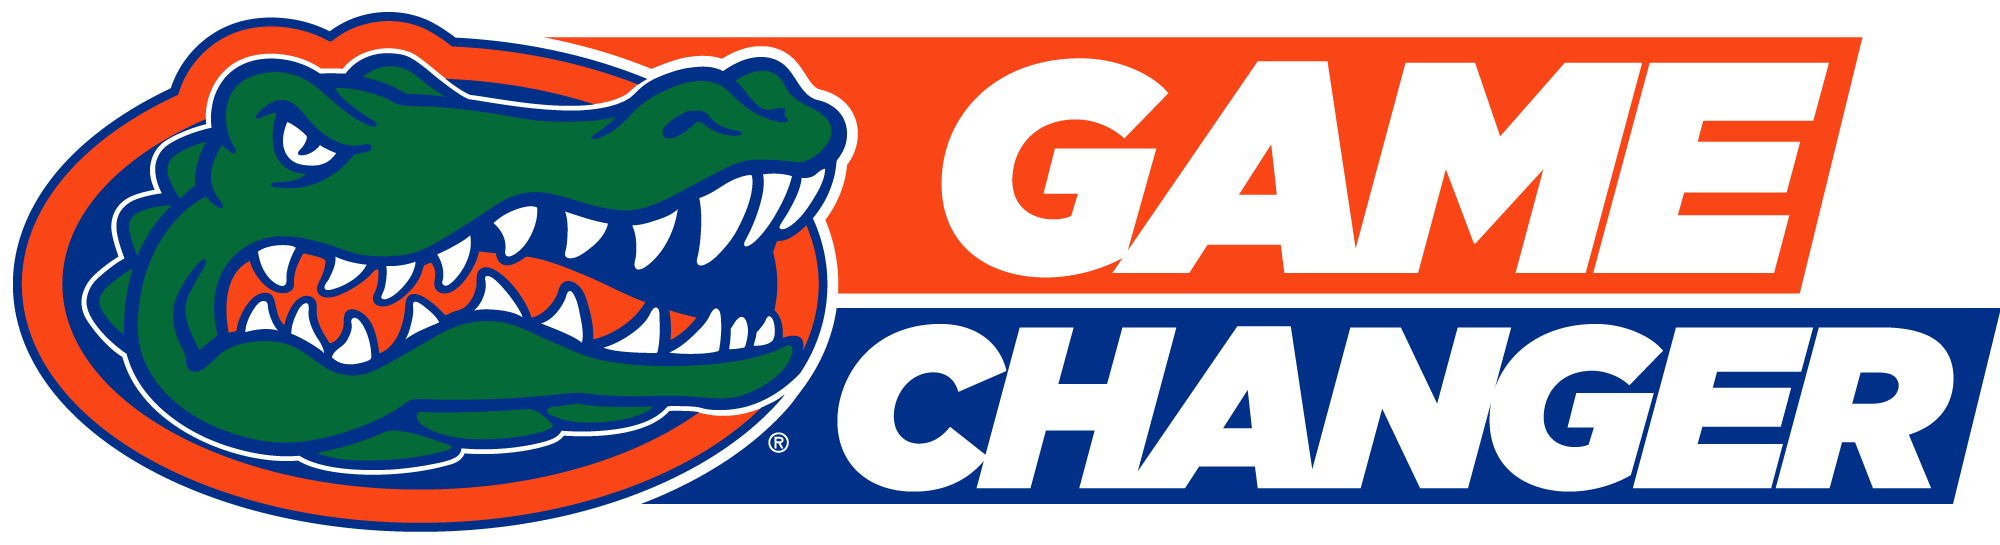 Gators Game Changer